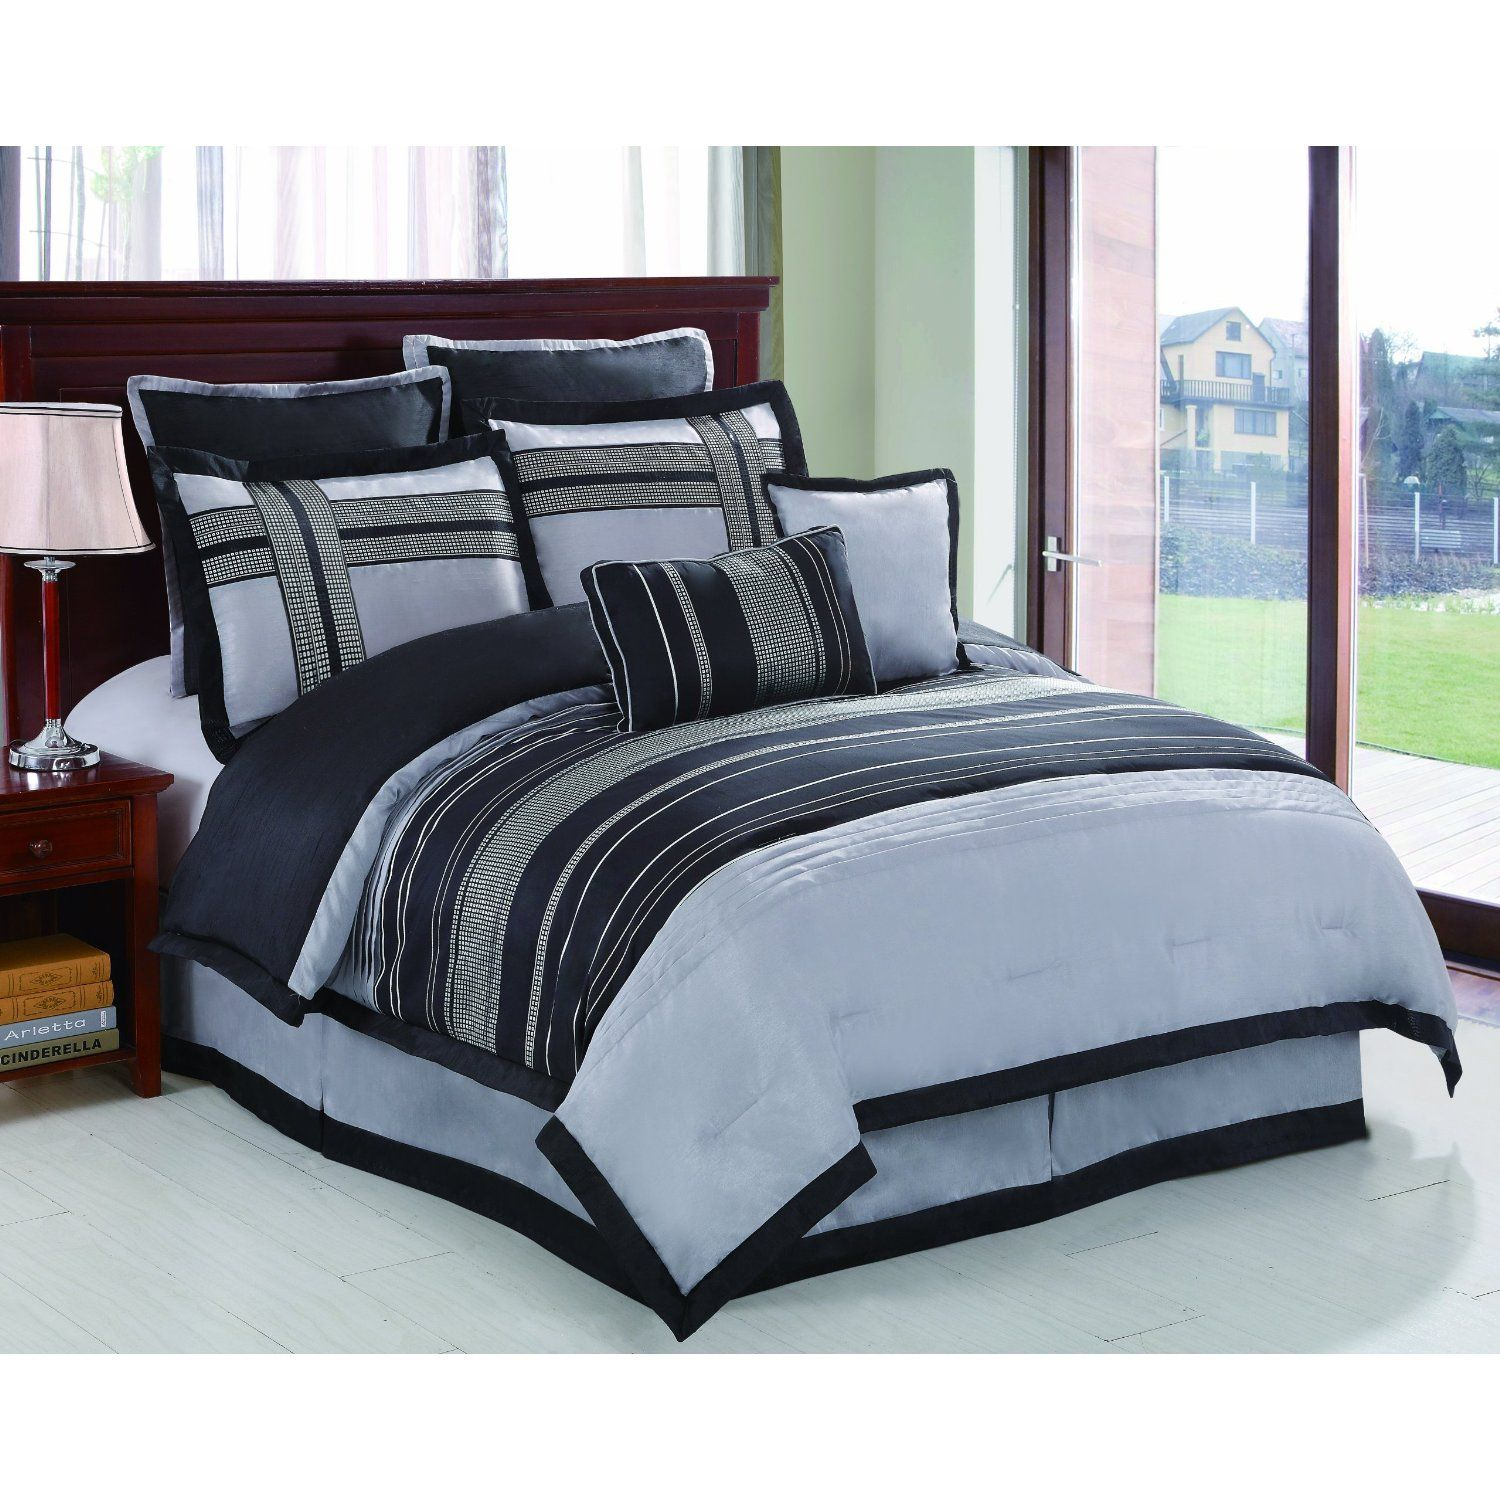 blue comforter sets very sophisticated and modern black